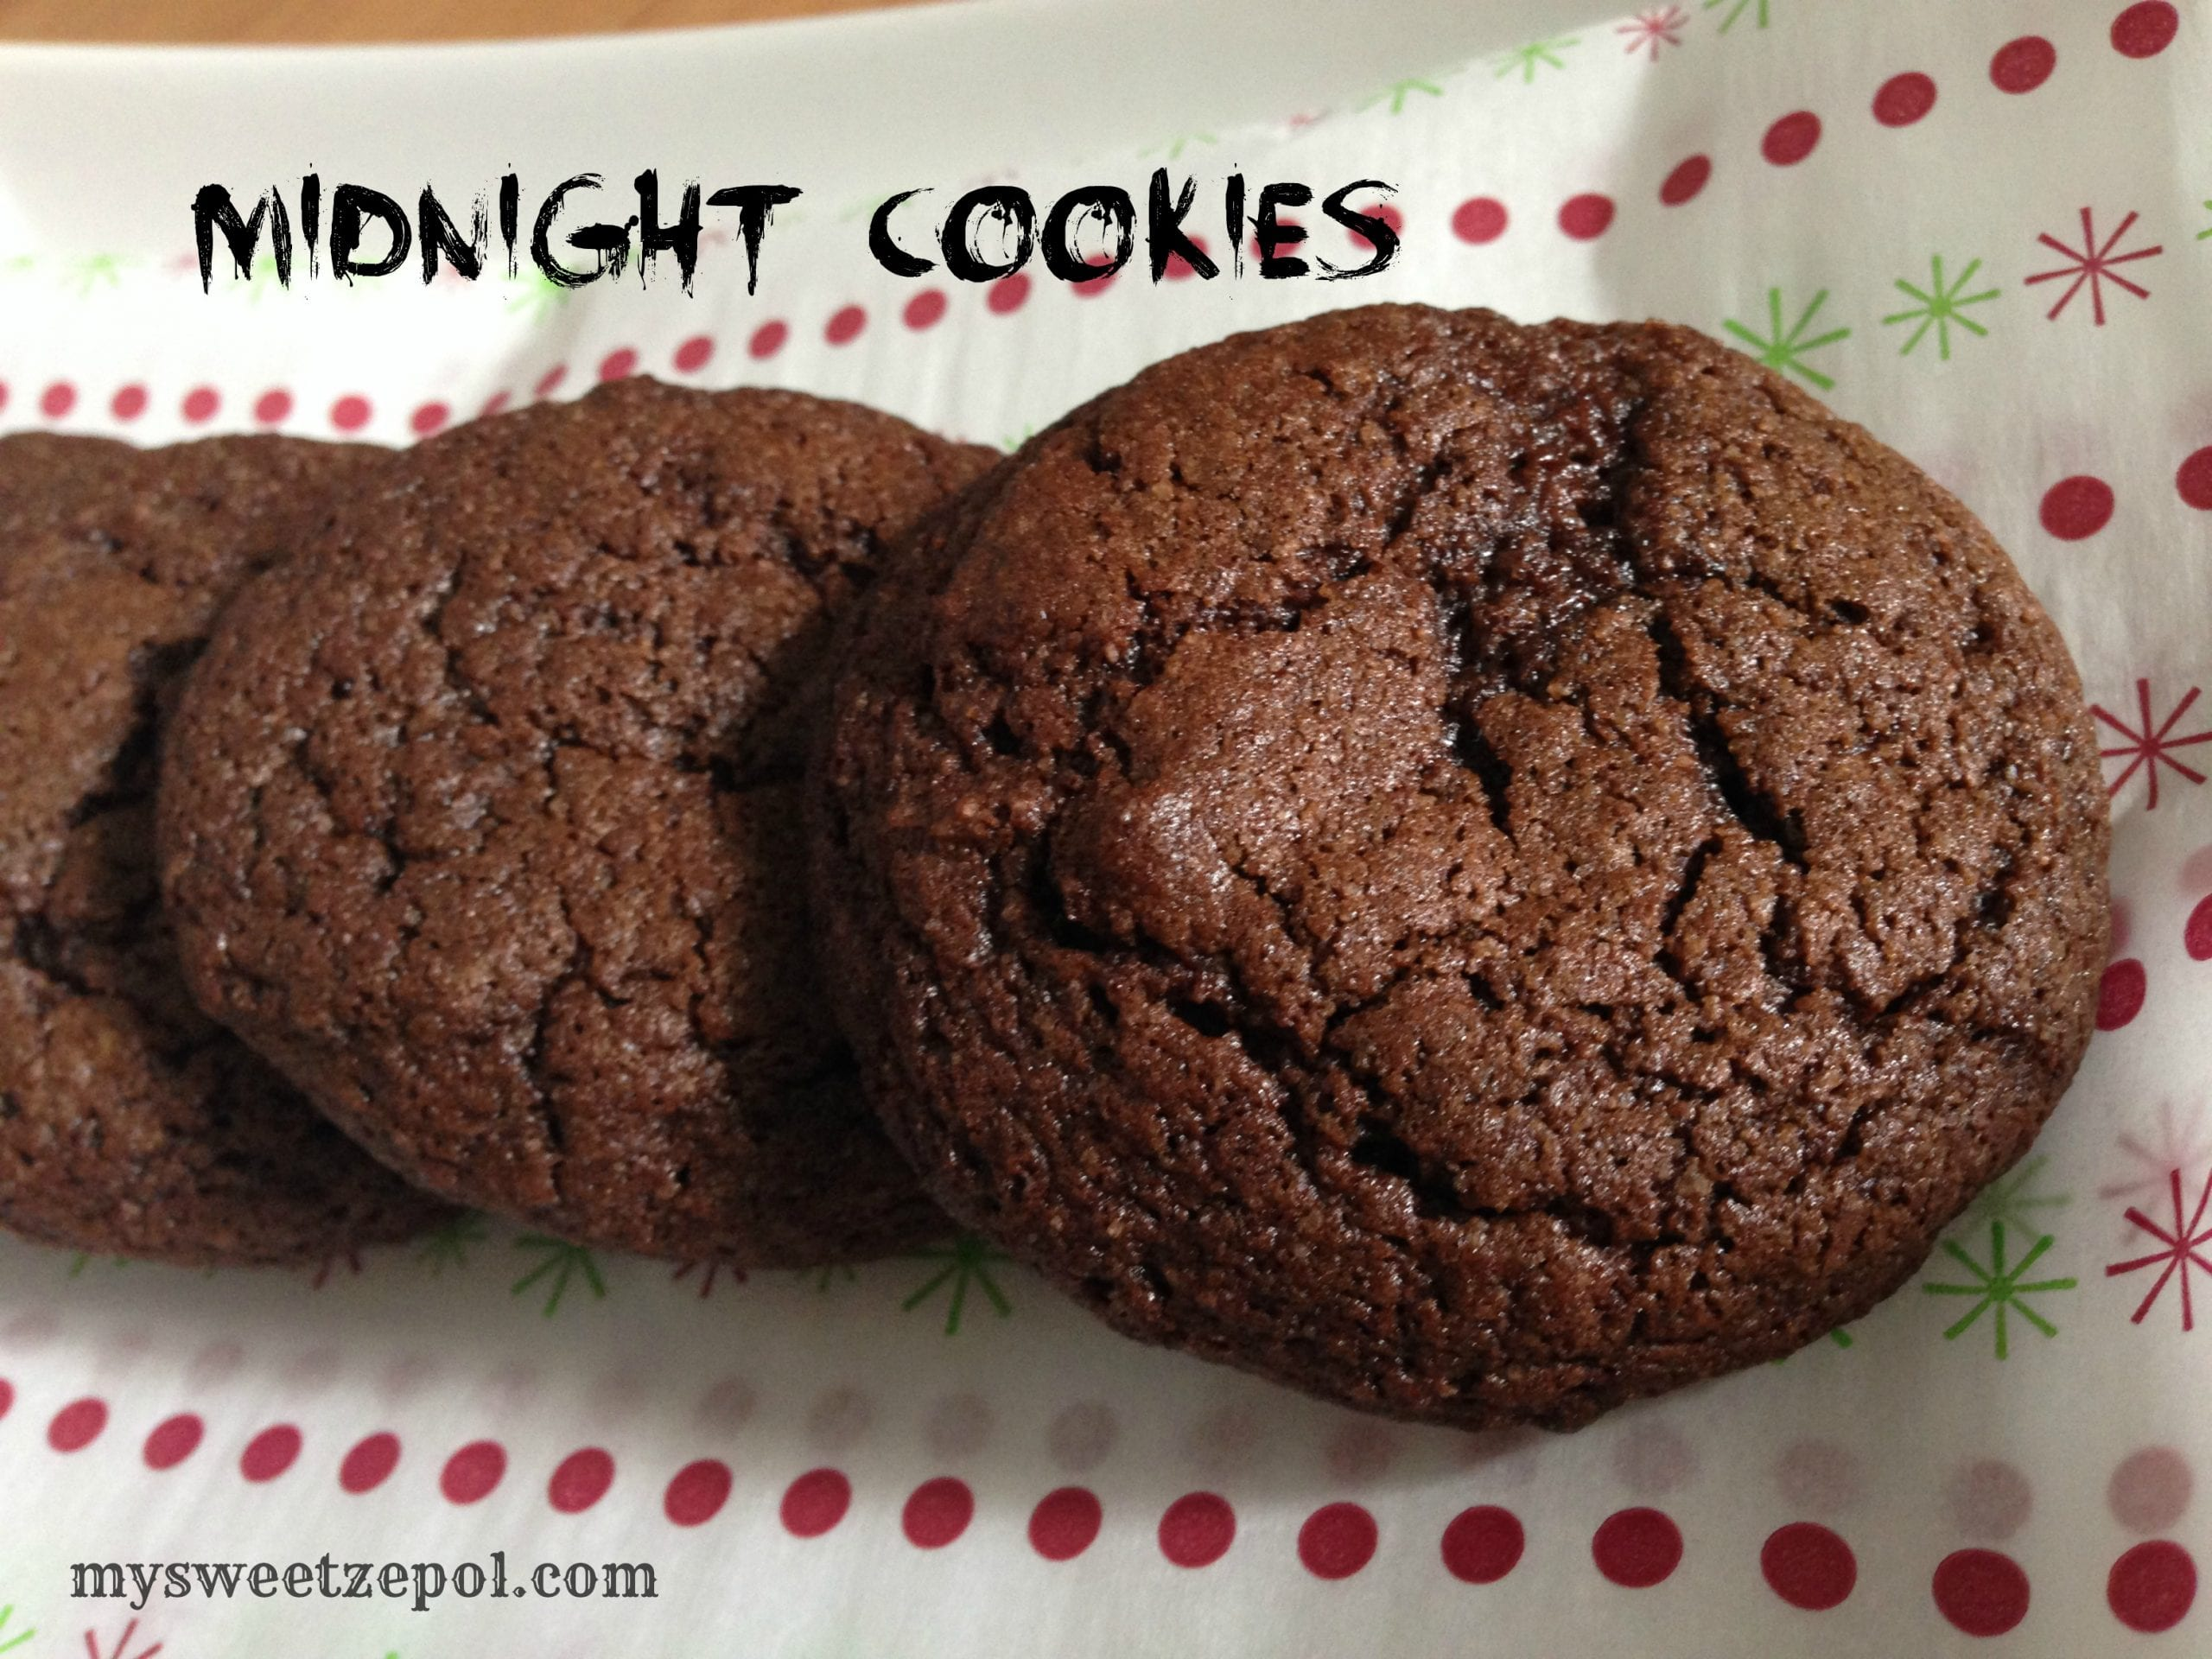 ... cookies 500ml chocolate midnight cookie about us midnight cookies